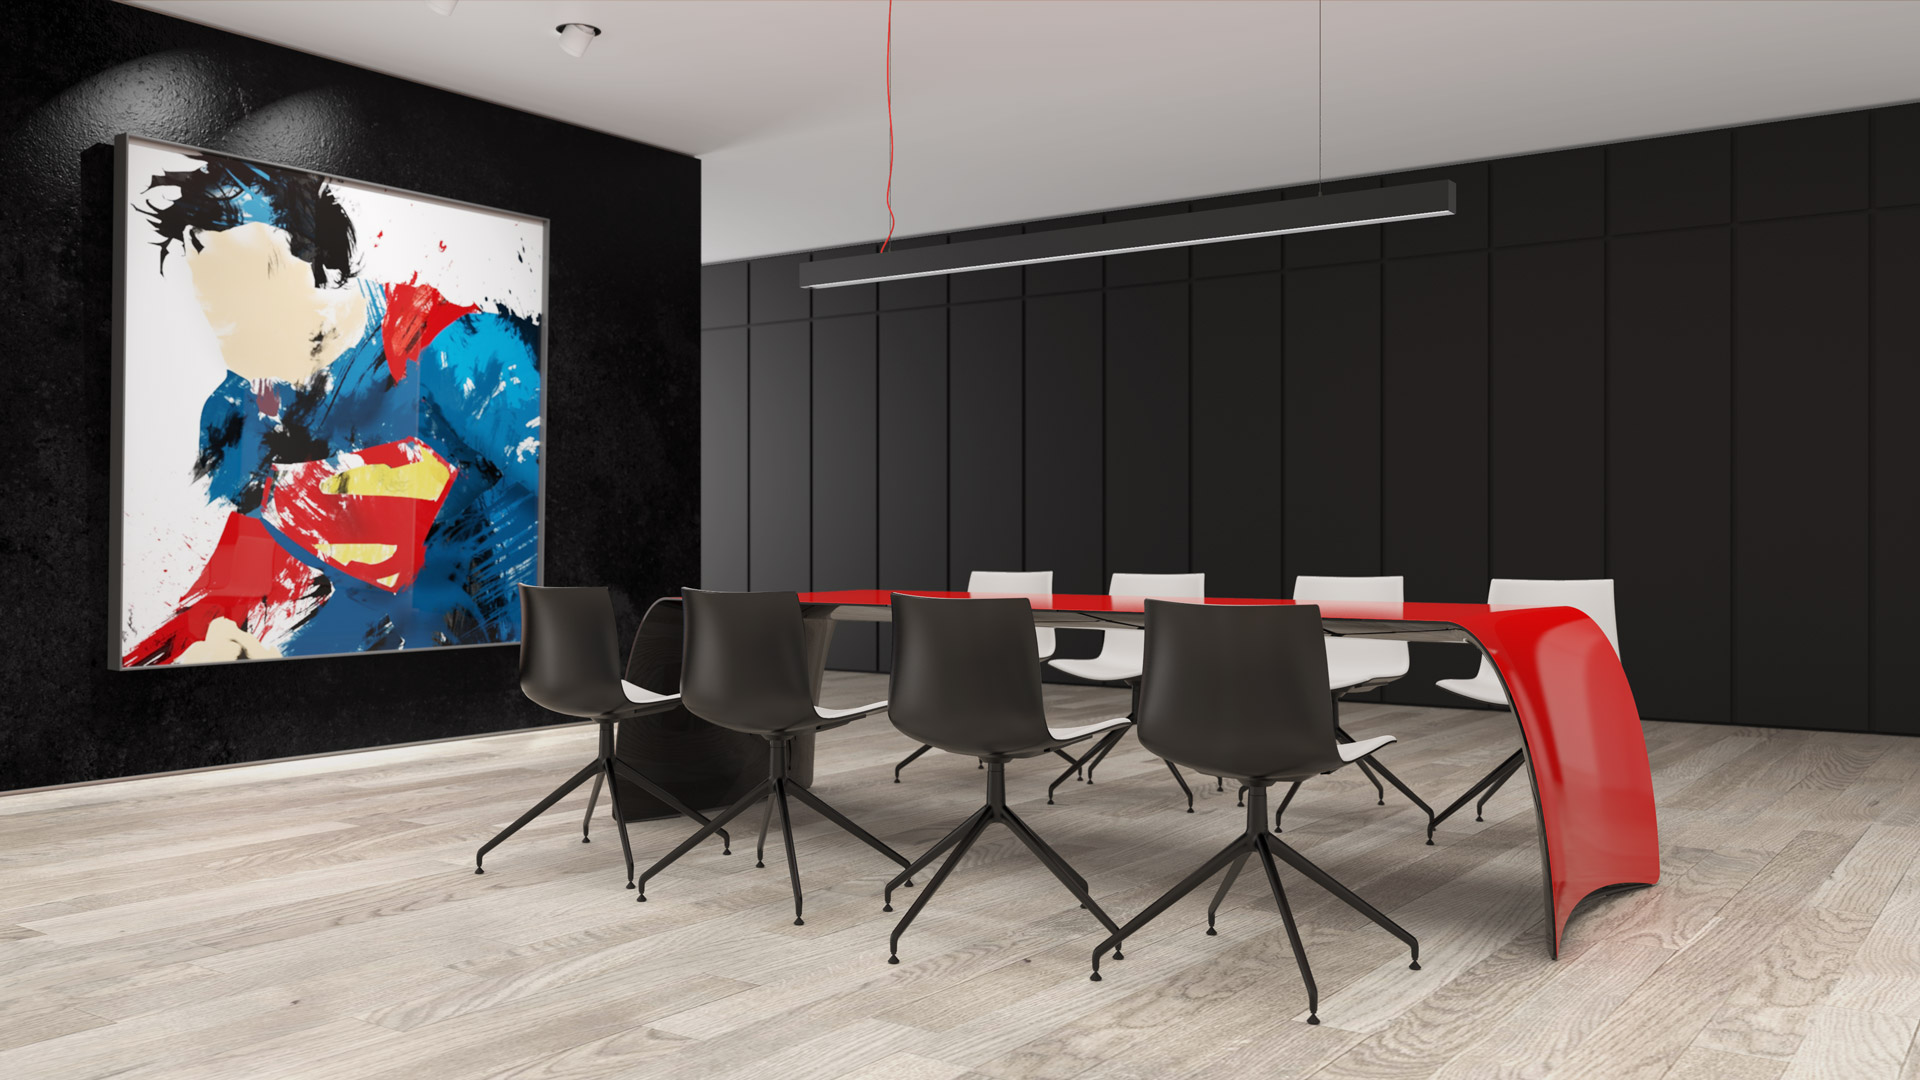 FLOYD /carbon. Dining table or desk. Made of carbon fiber, Kevlar and stainless steel. Painted semigloss red on top, black on the bottom side.